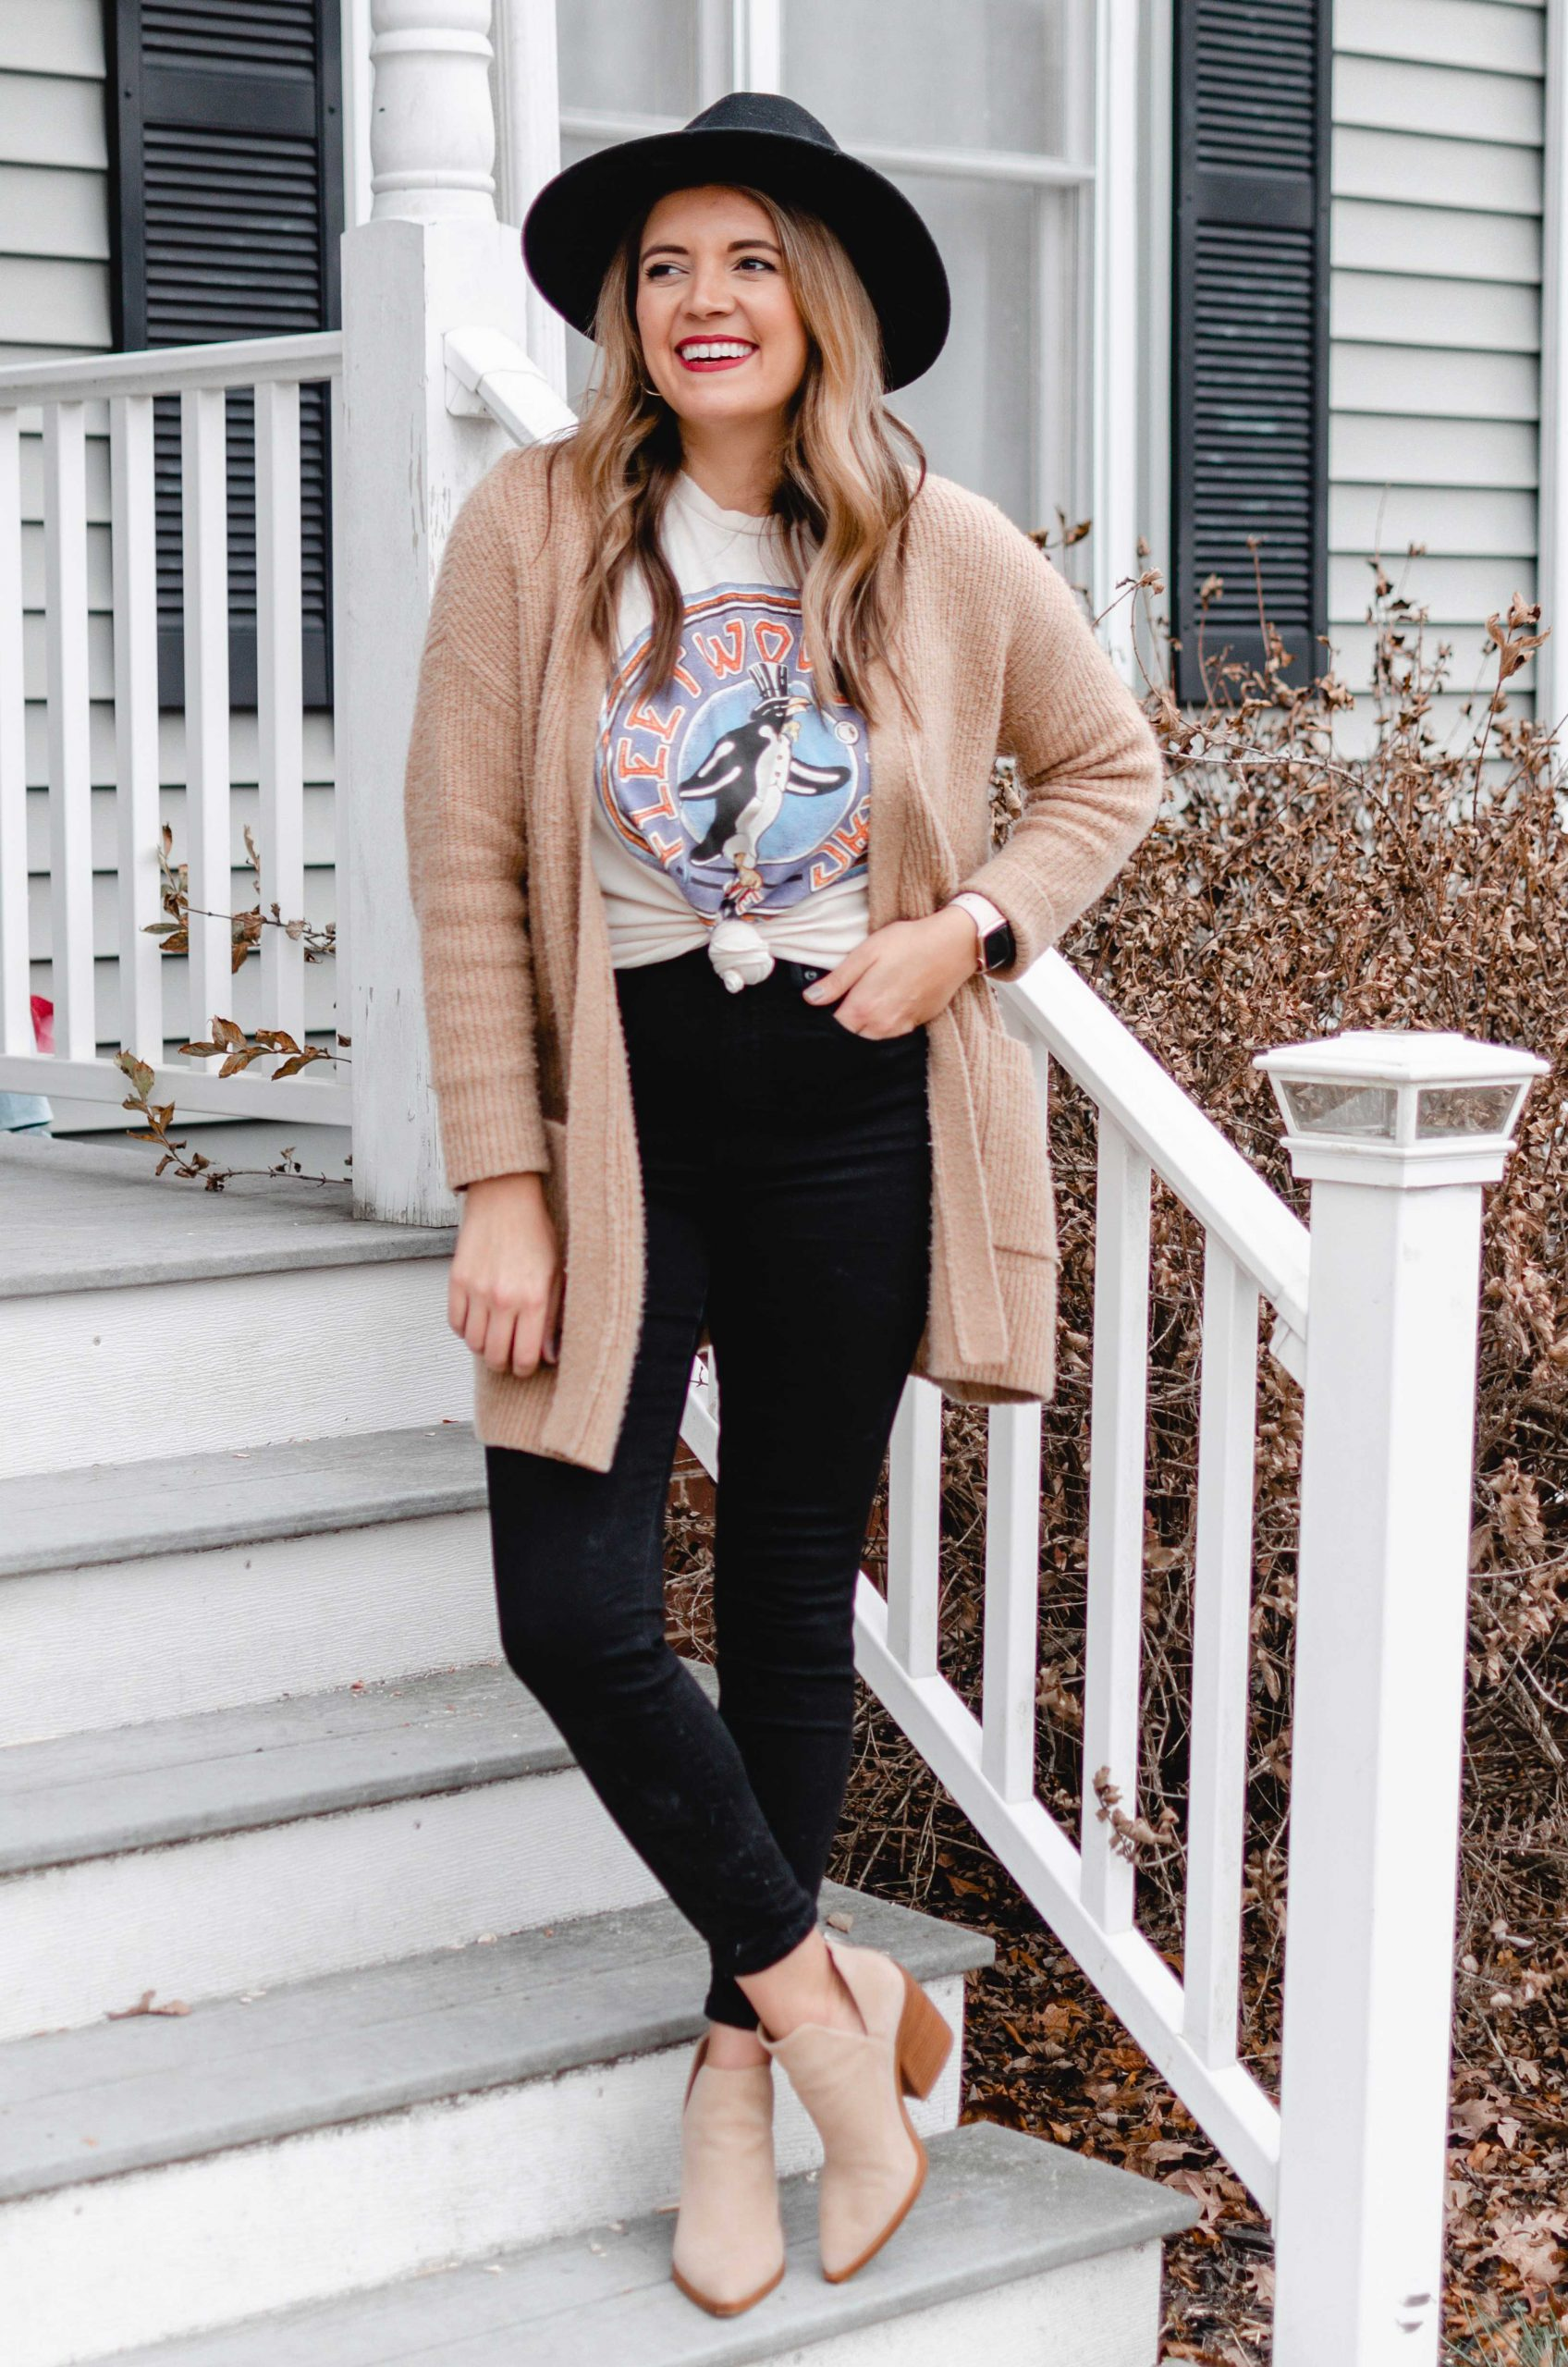 Virginia blogger, Lauren Dix, shares 4 ways to wear graphic tees for winter!